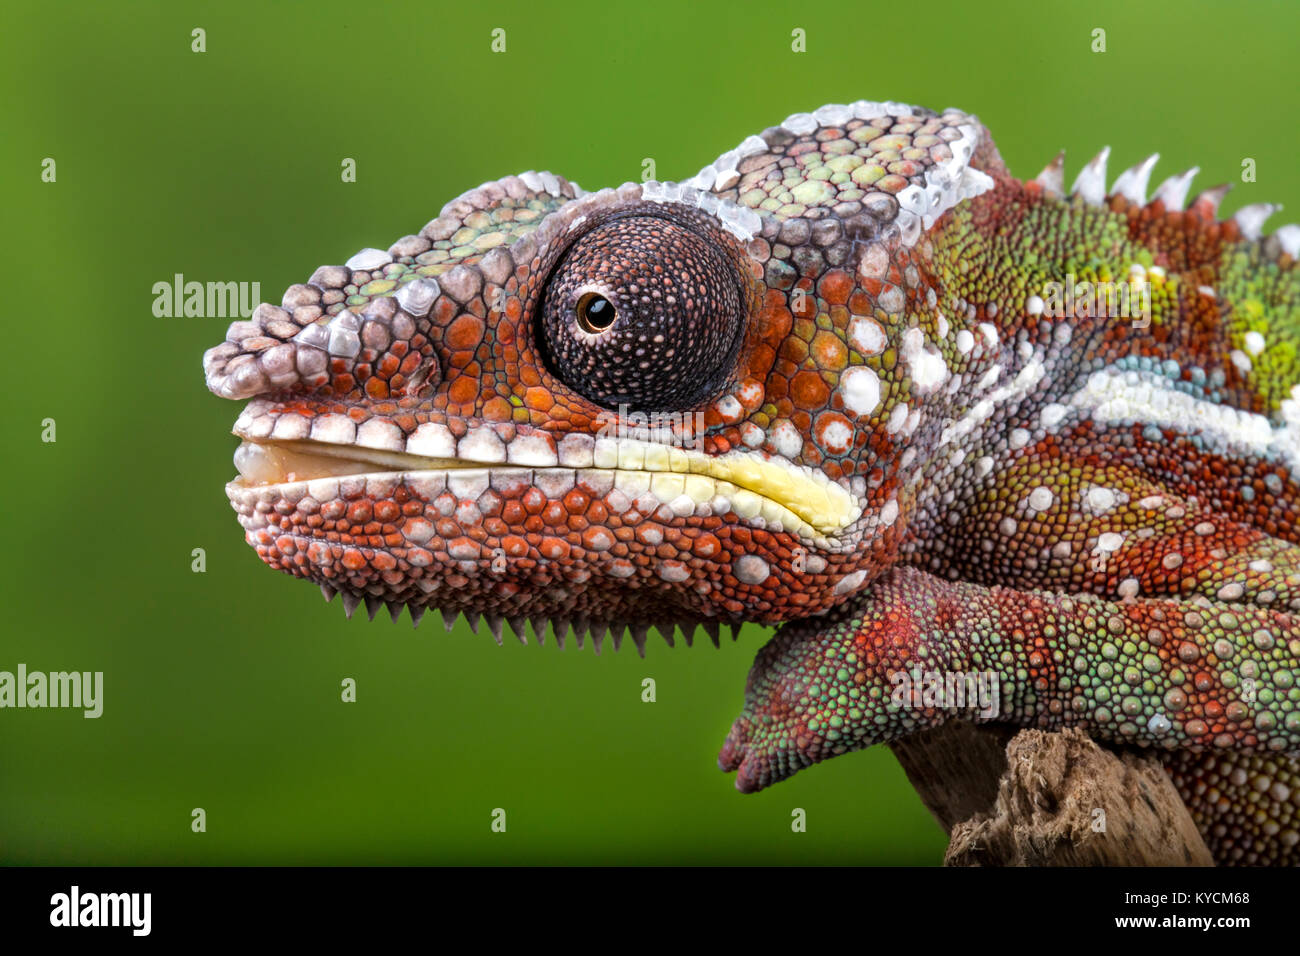 A colourful Panther Chameleon looking forward and about to strike with it's tounge.With Release. - Stock Image